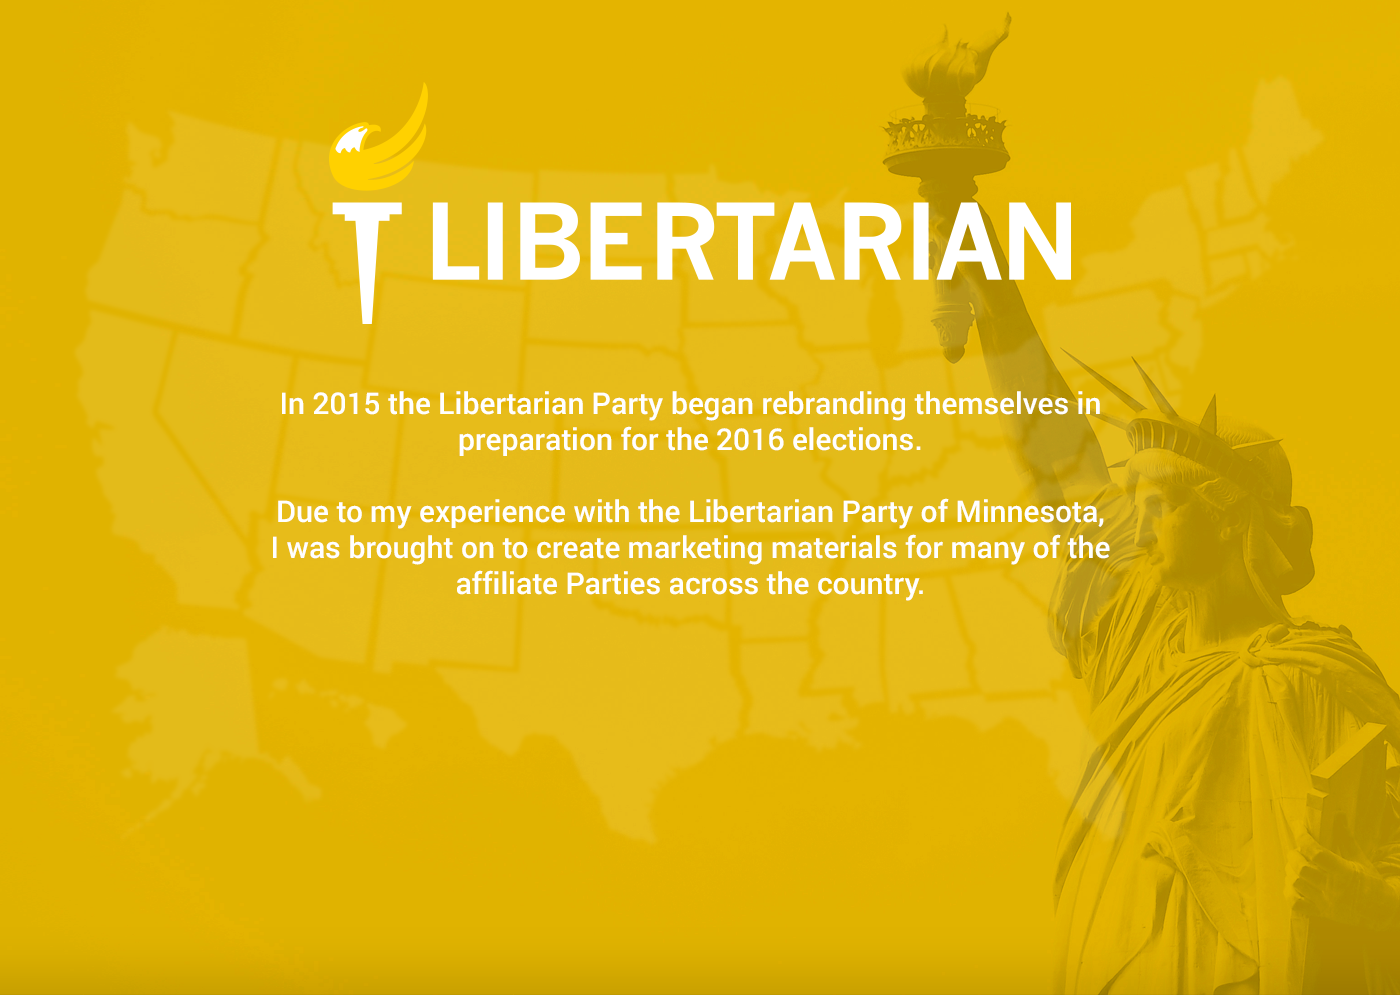 Libertarian dating site